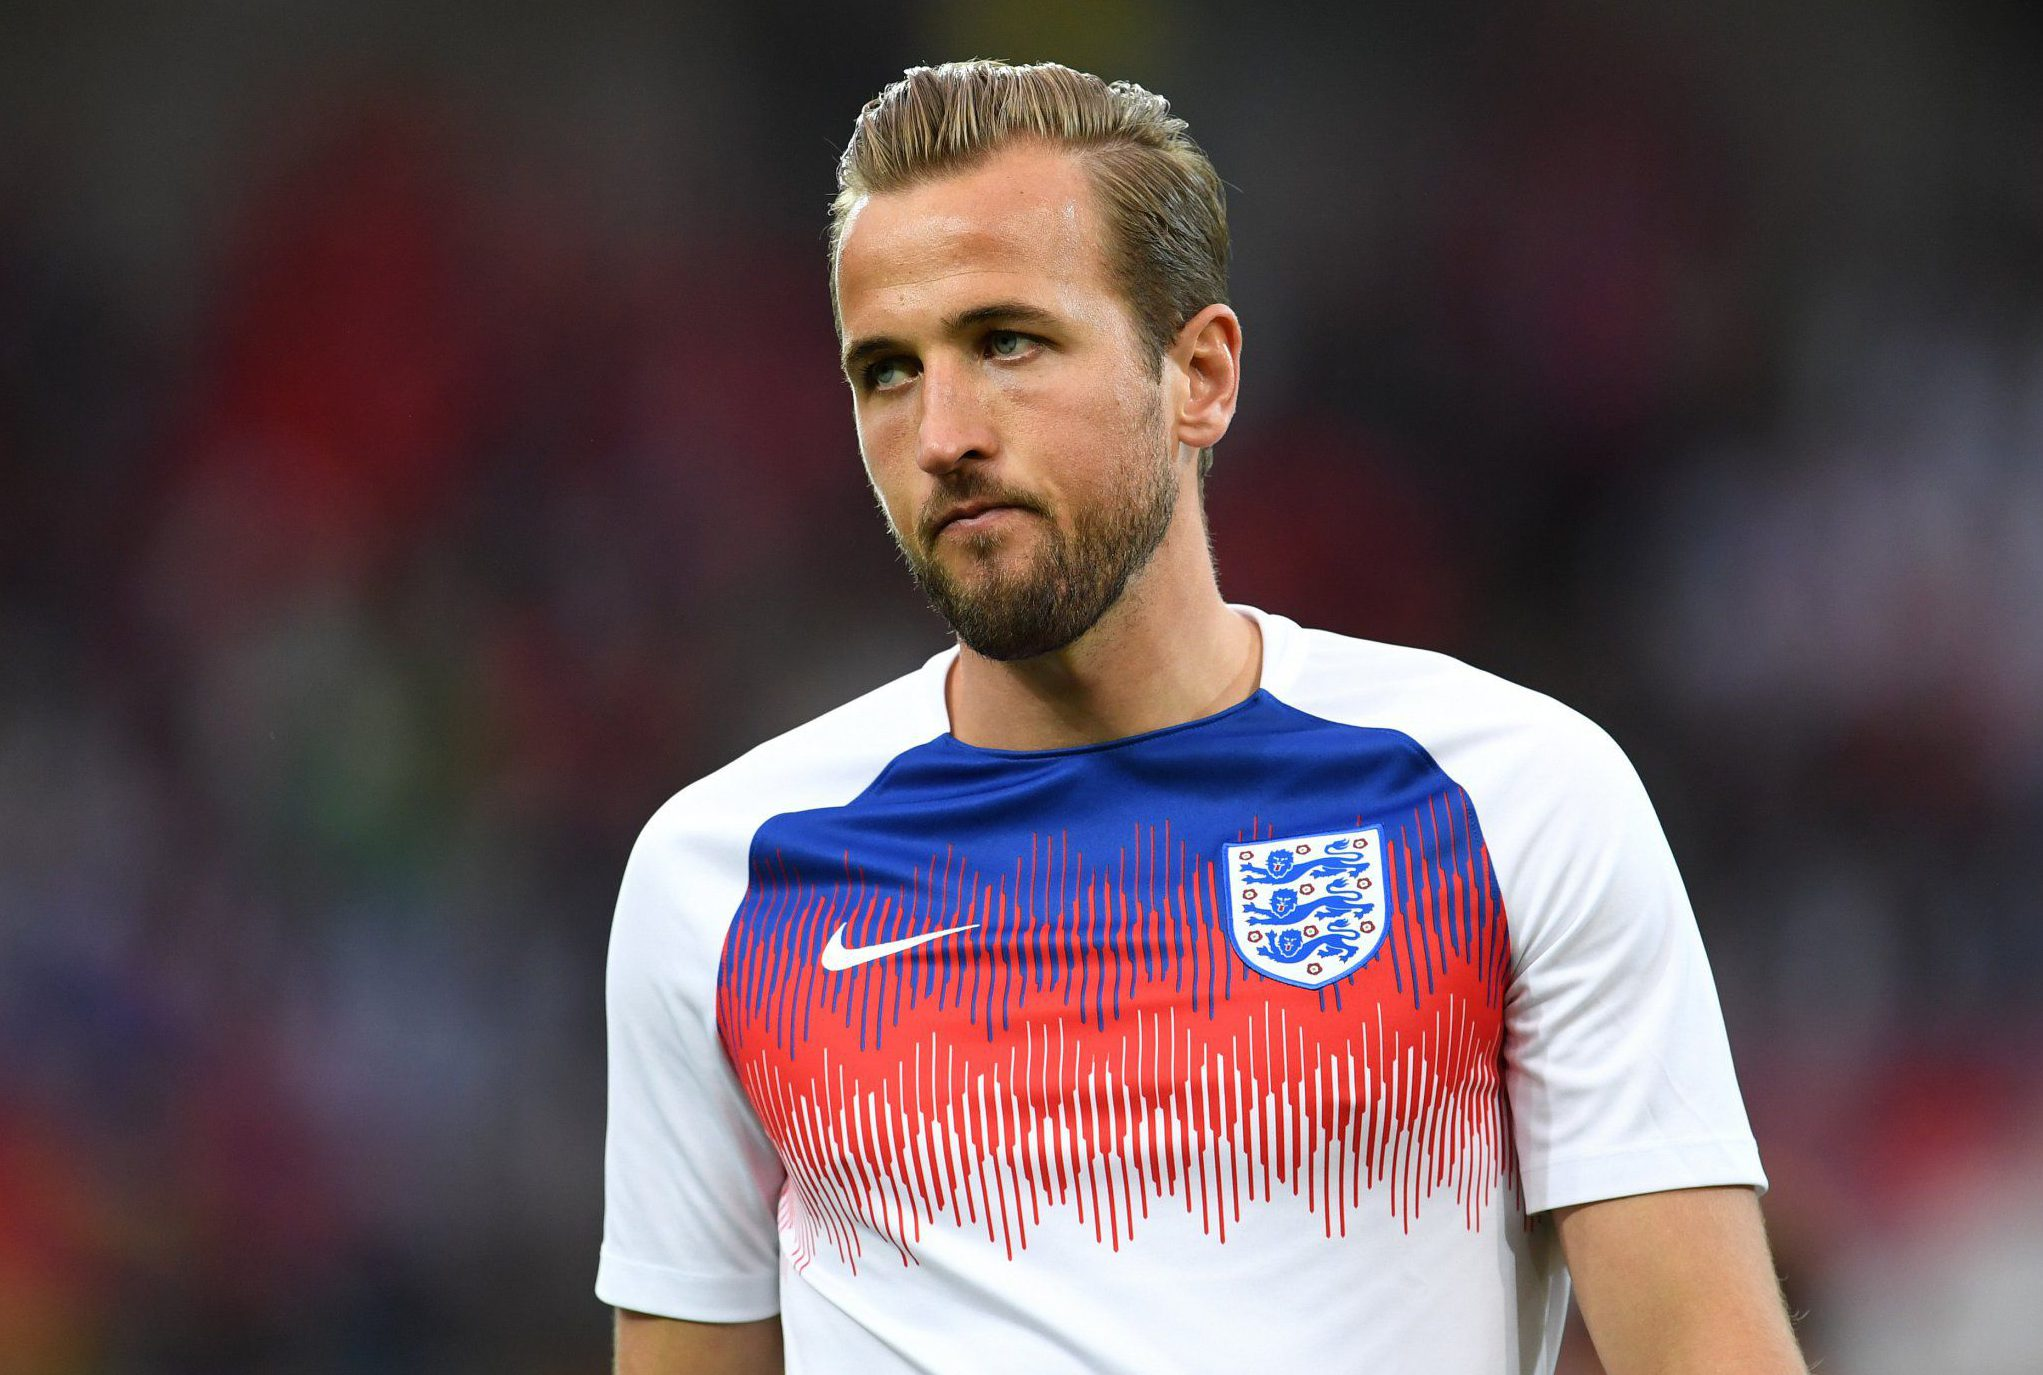 MOSCOW, RUSSIA - JULY 03: Harry Kane of England looks on during warm up prior to the 2018 FIFA World Cup Russia Round of 16 match between Colombia and England at Spartak Stadium on July 3, 2018 in Moscow, Russia. (Photo by David Ramos - FIFA/FIFA via Getty Images)